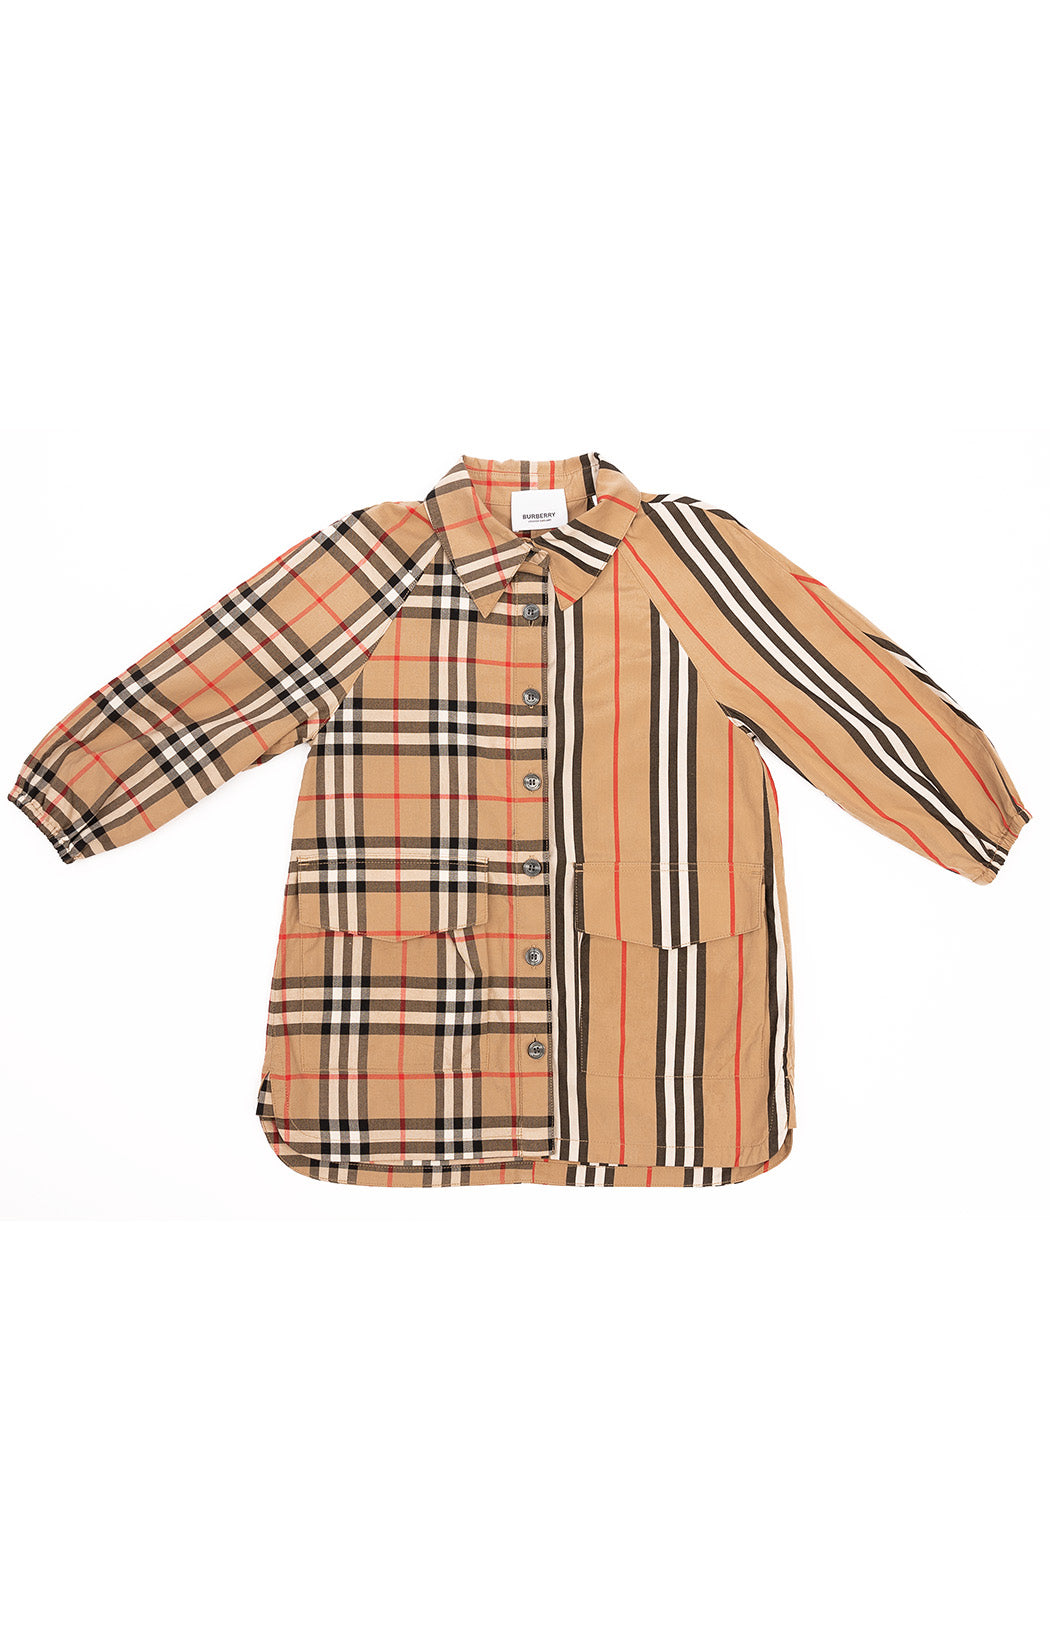 Tan classic Burberry plaid button-down dress with front flap pockets and long sleeves